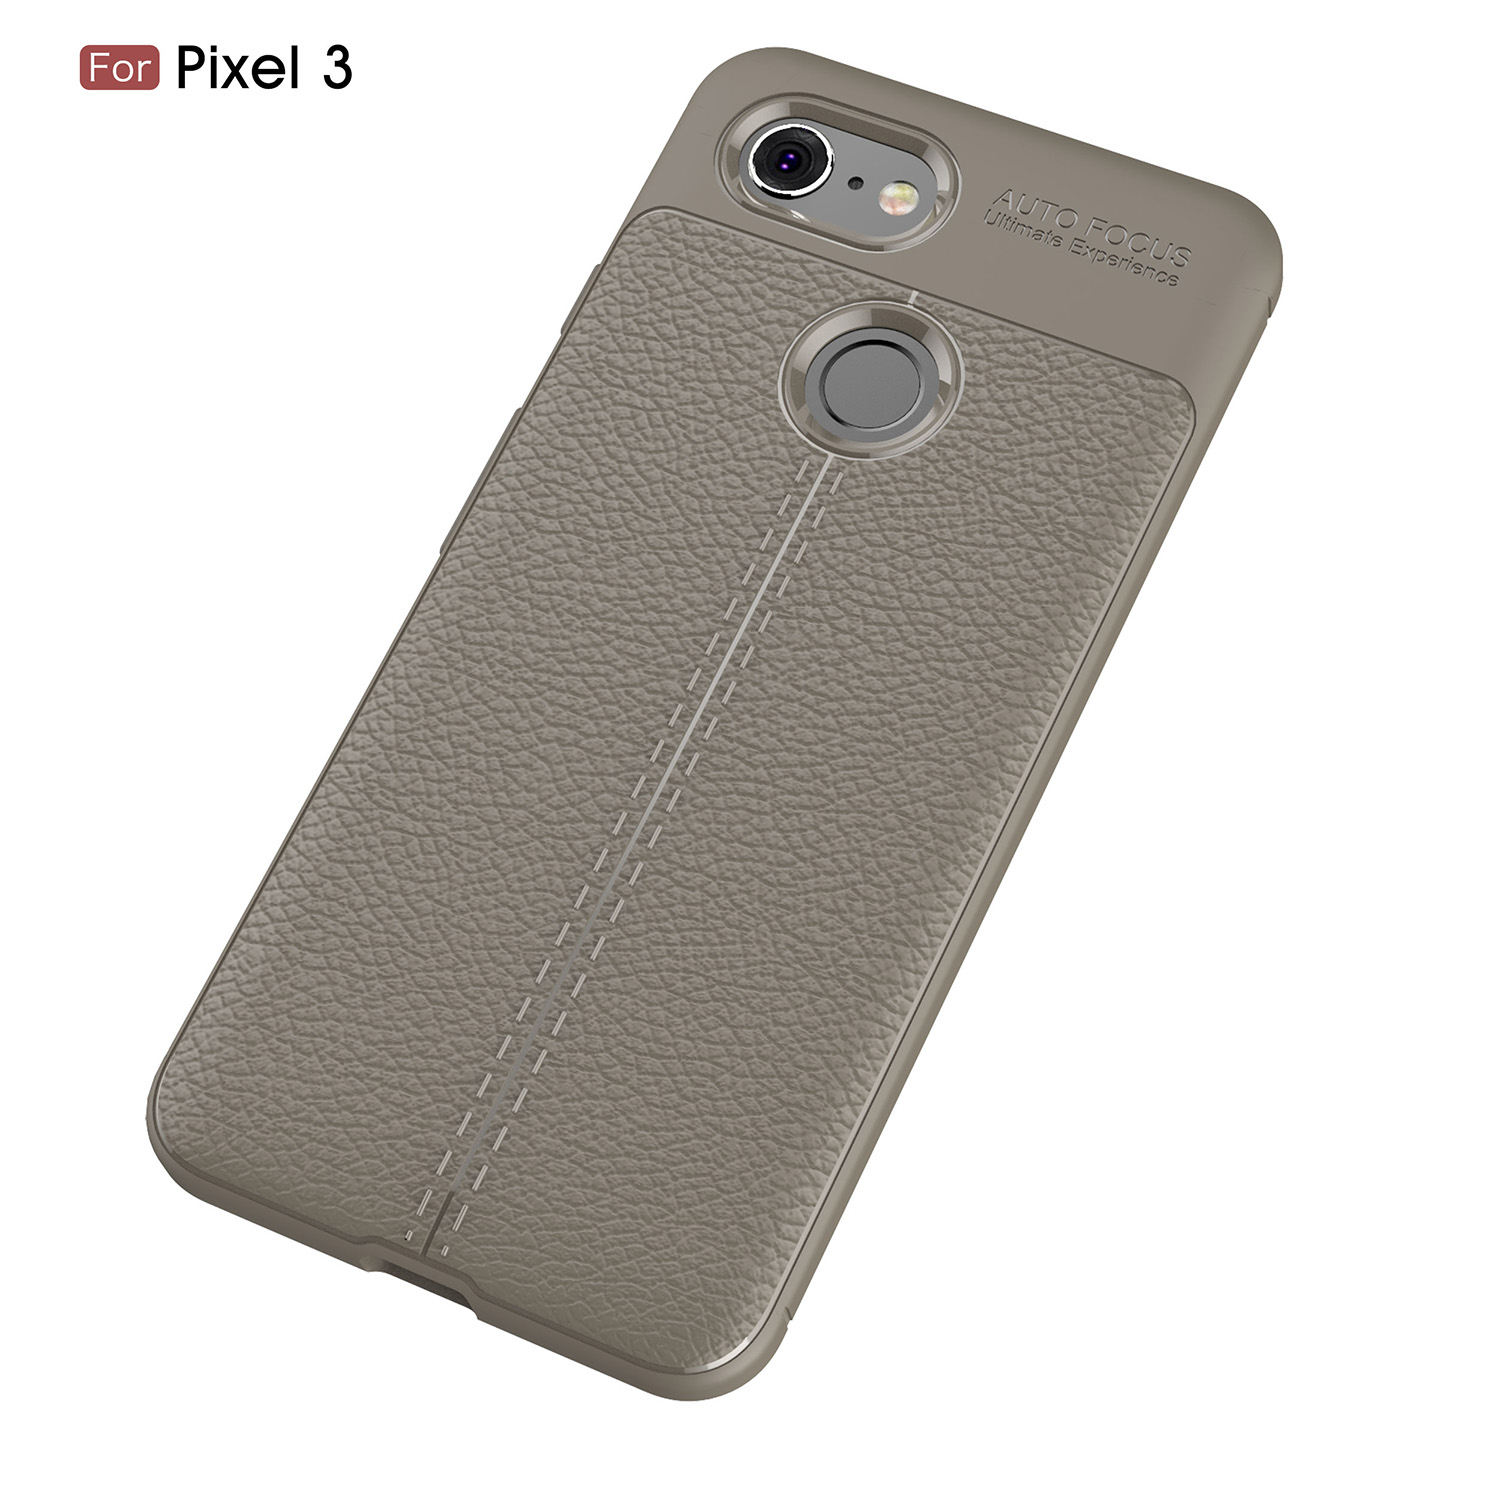 Shell Google Pixel 3 Case Pixel3 Cover Soft Silicone Leather Design Cover For Google Pixel 3 Phone Case Coque 5.4